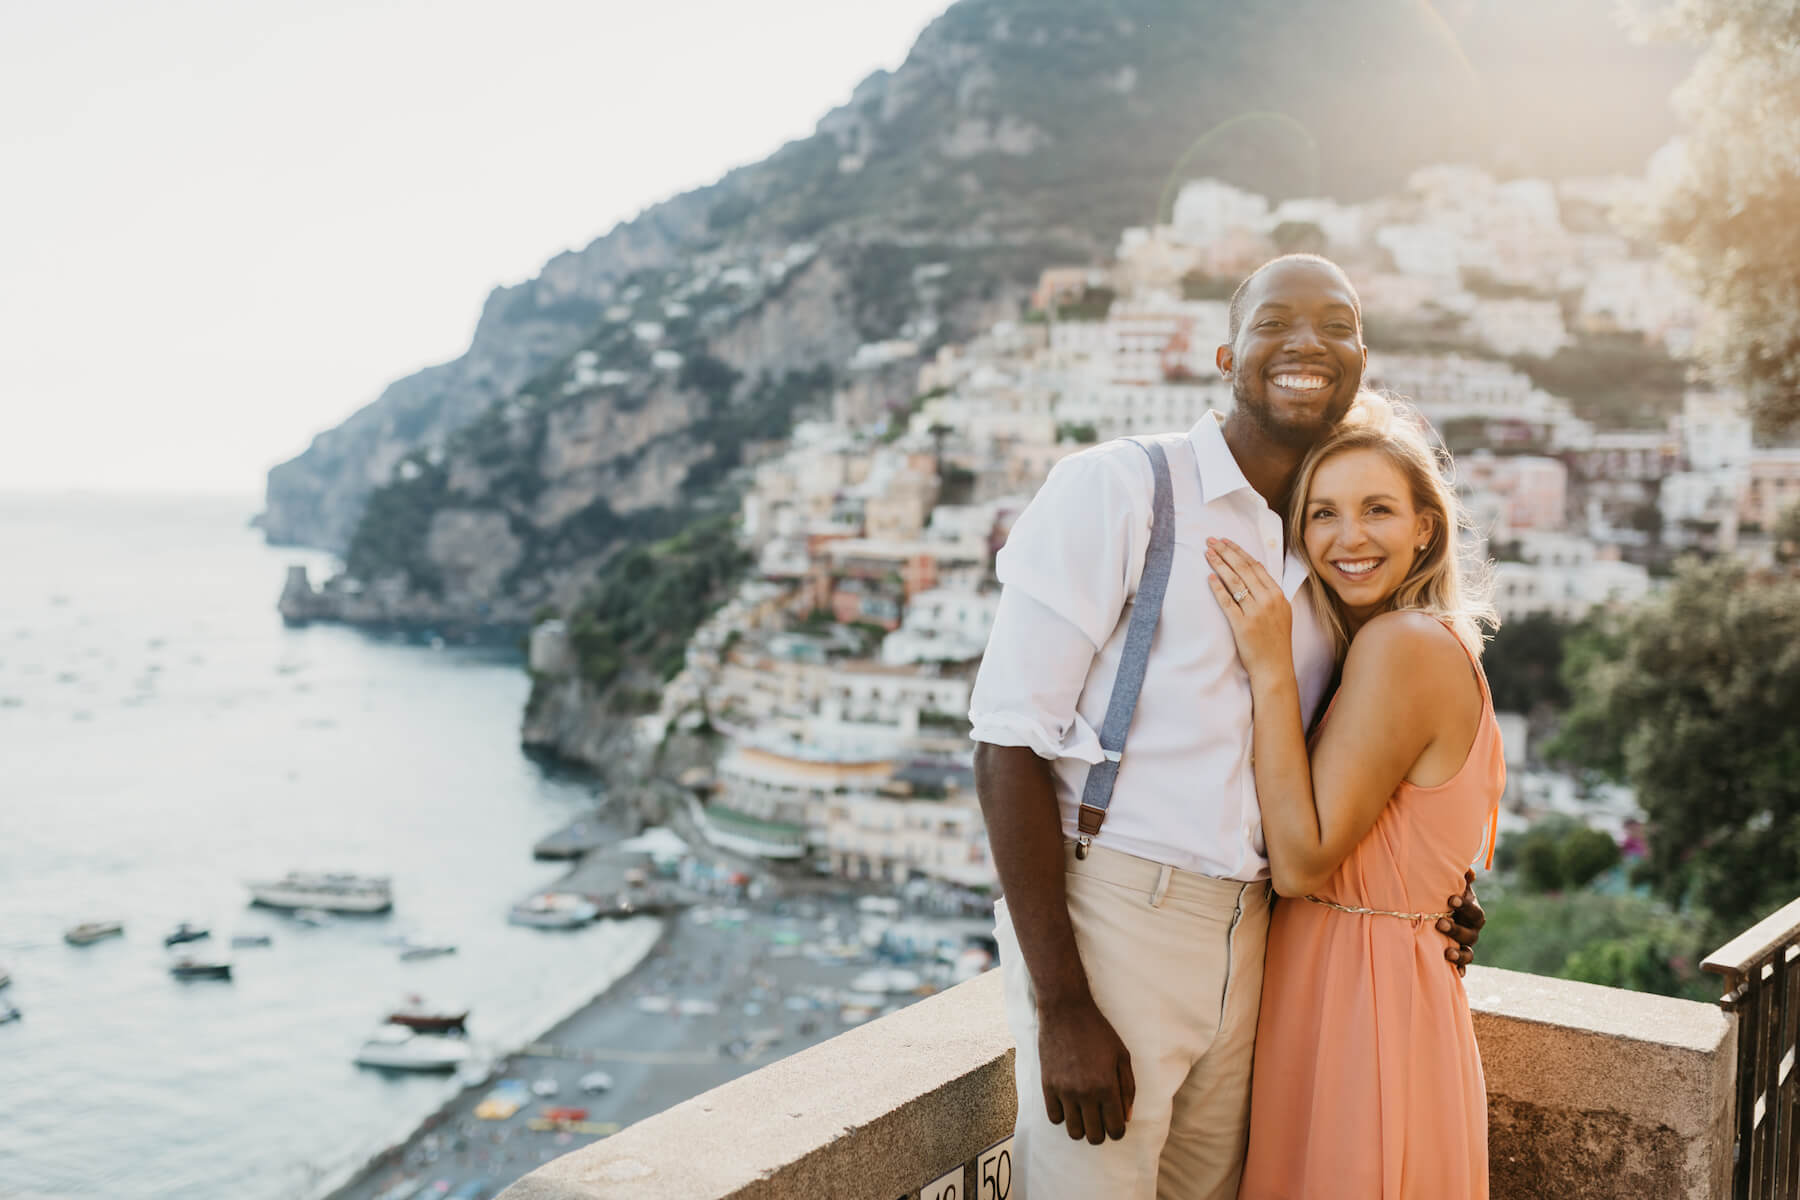 couple posing for their Flytographer photo shoot in Positano on the Amalfi Coast in Italy